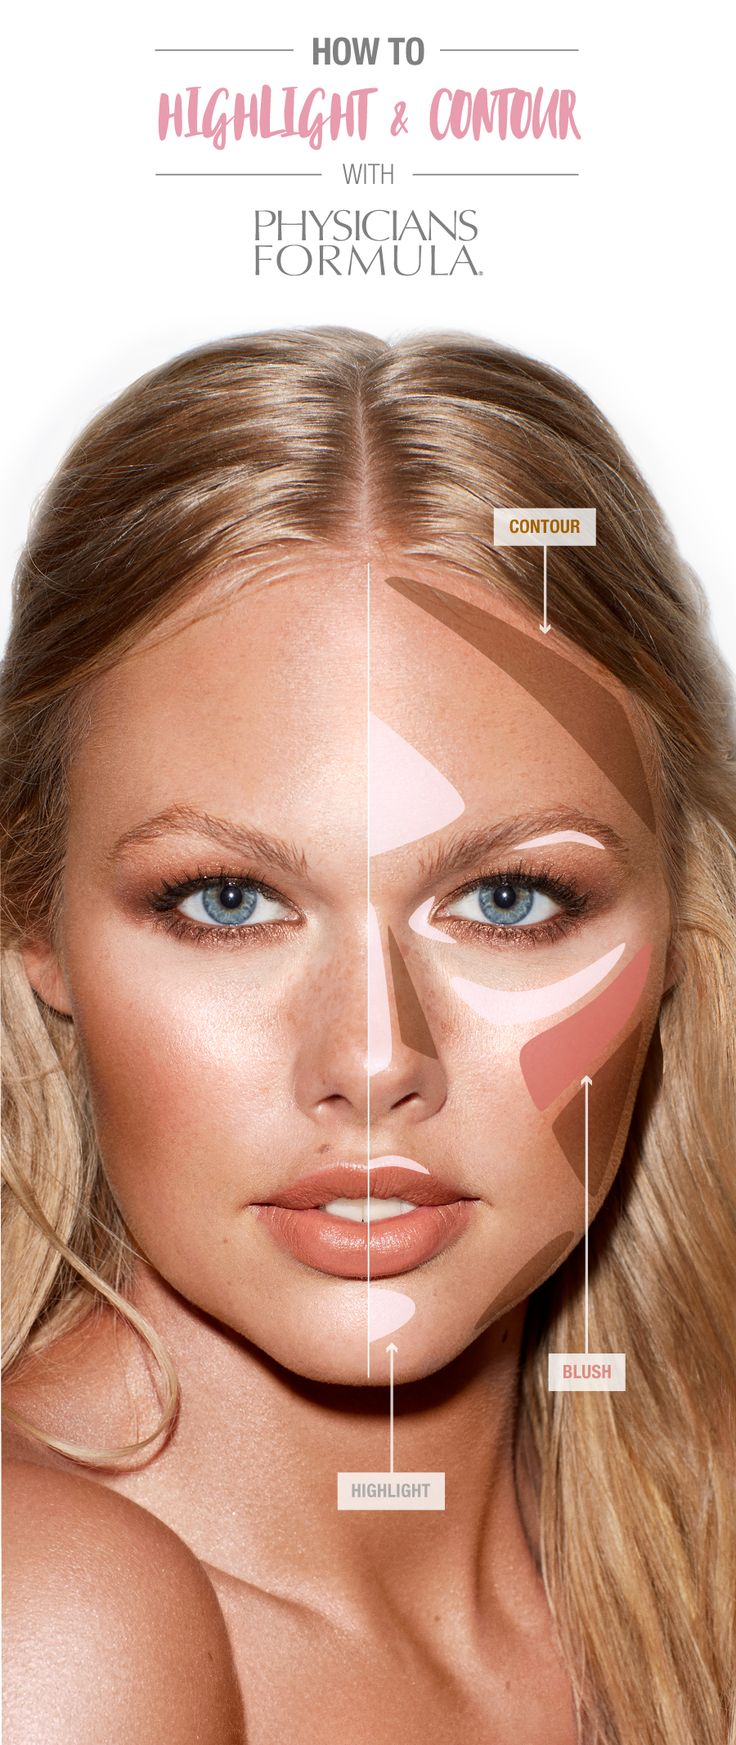 How To: Add contour, blush and highlight | Physicians Formula